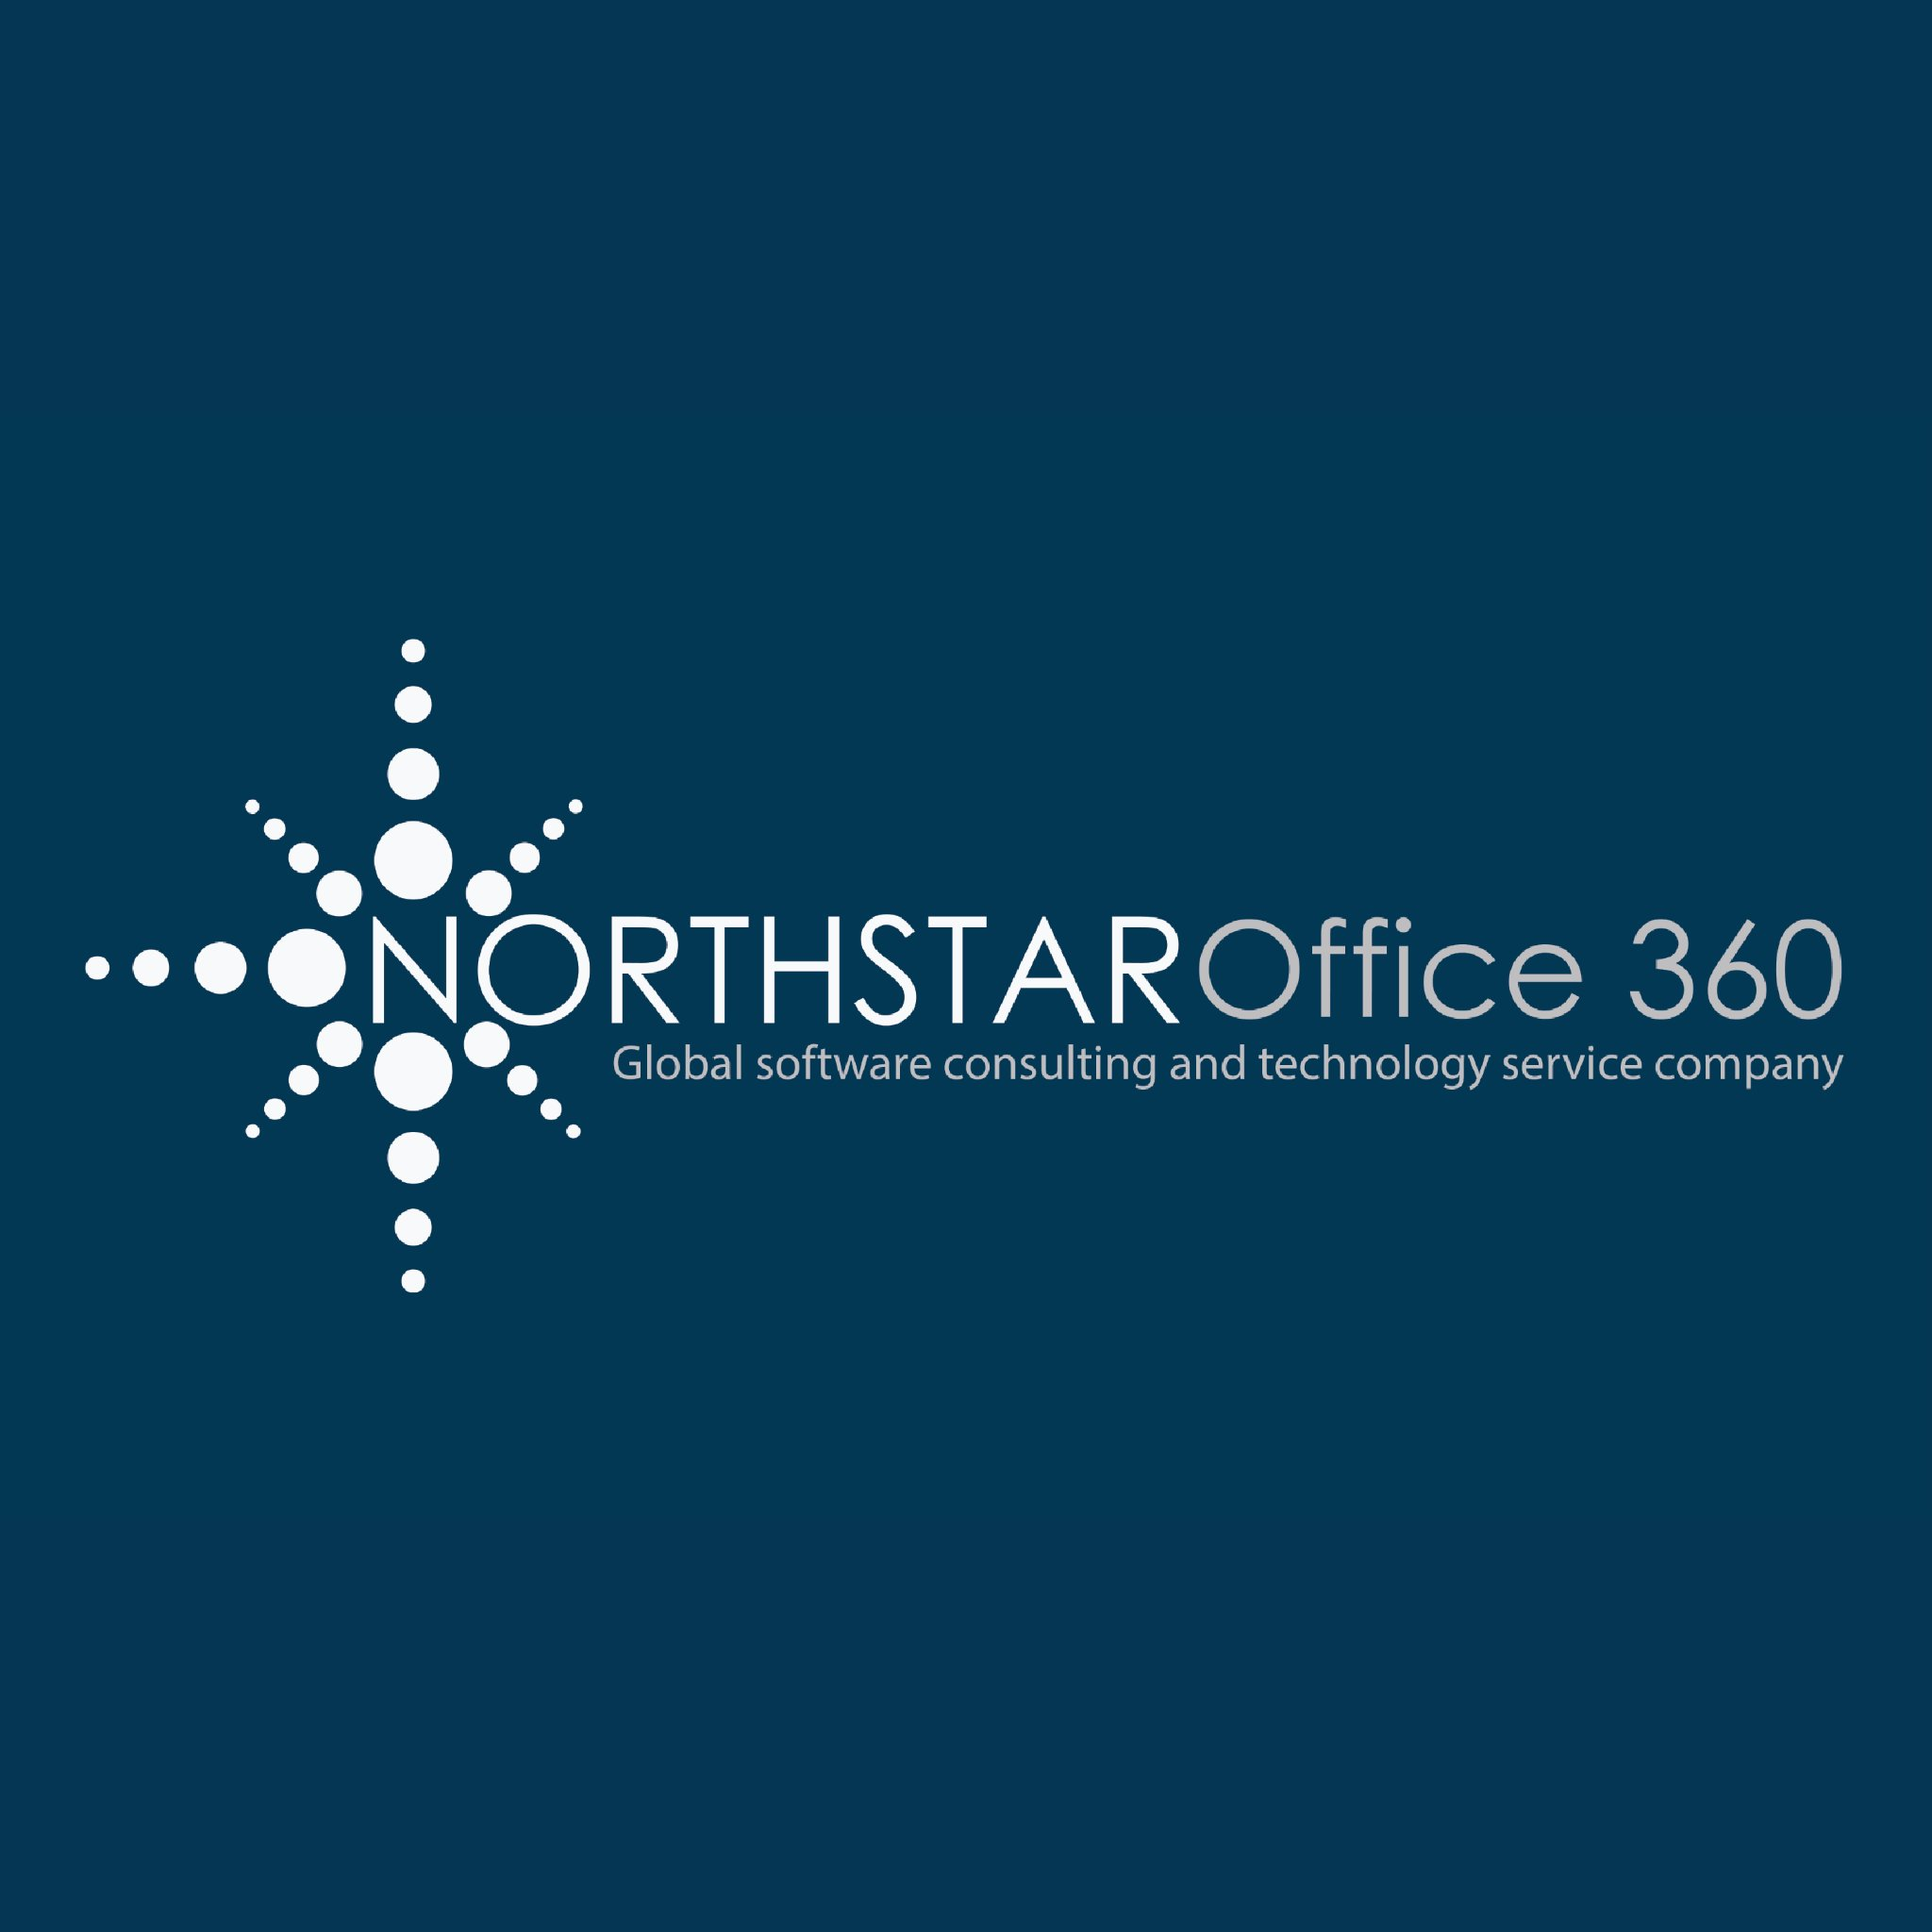 Northstar Office 360